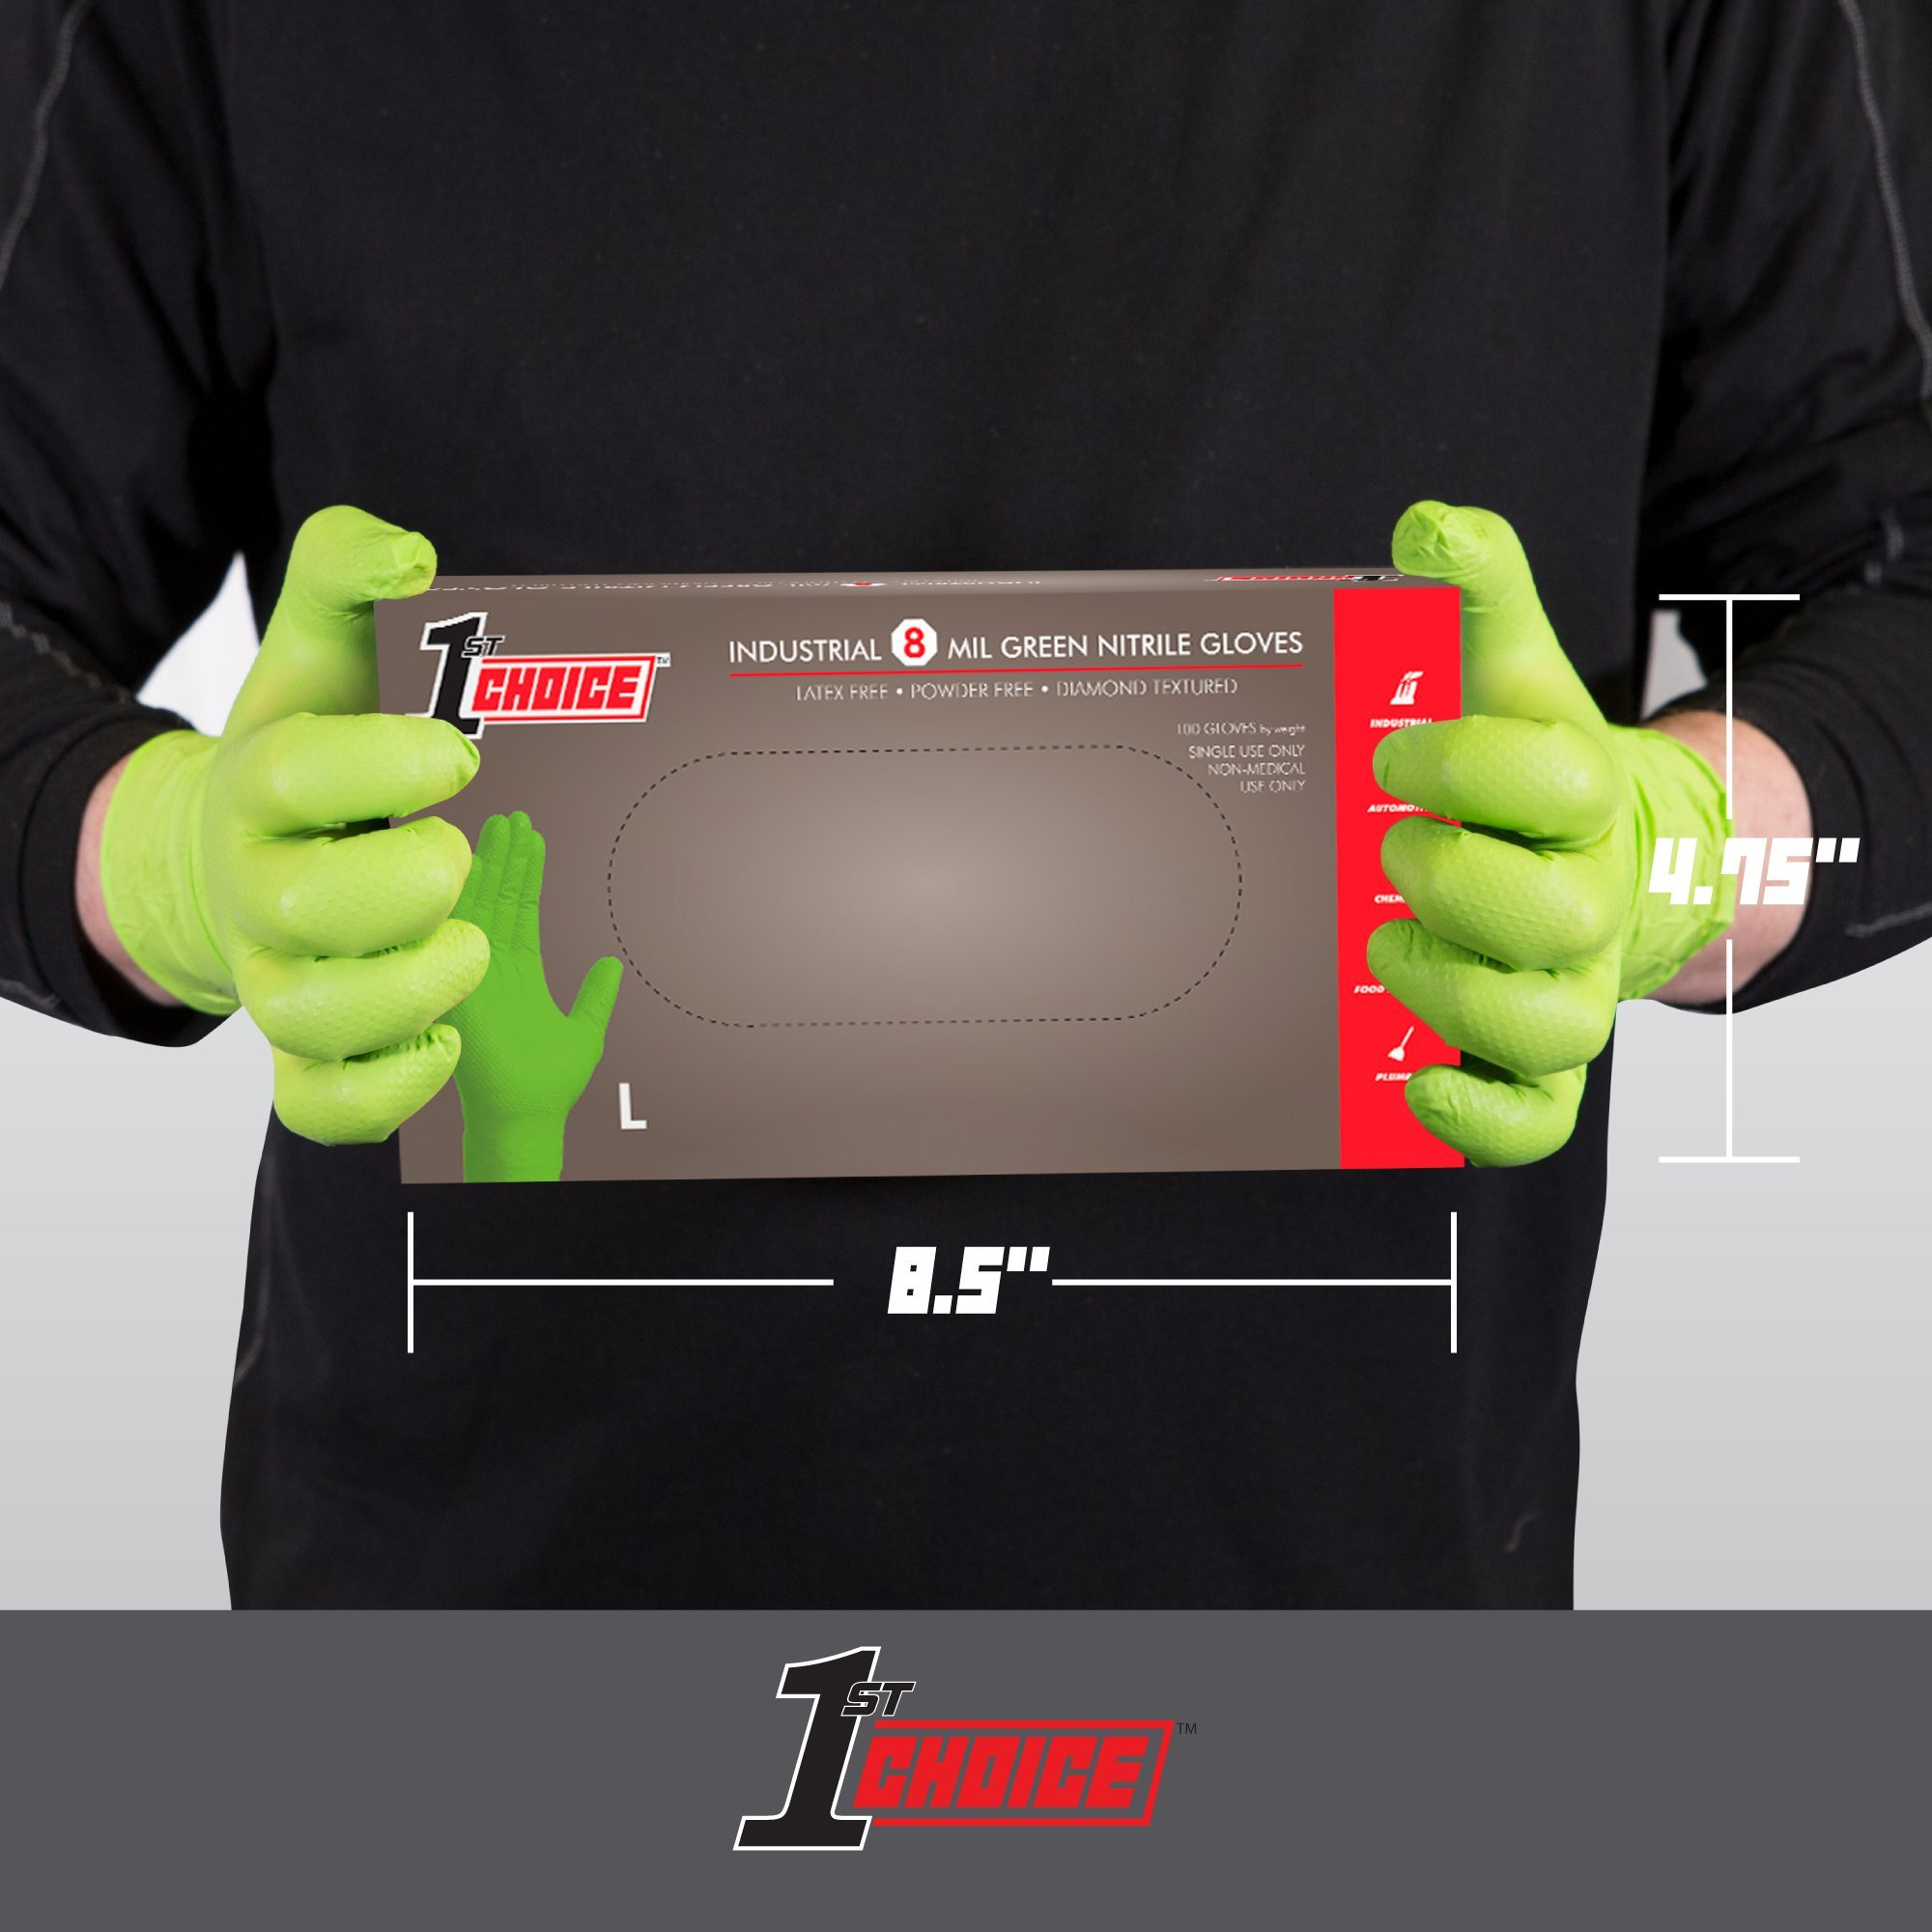 1st Choice Industrial 8 Mil Green Nitrile Gloves - Latex Free, Powder Free, Non-Sterile, Large, Case of 400 by 1st Choice